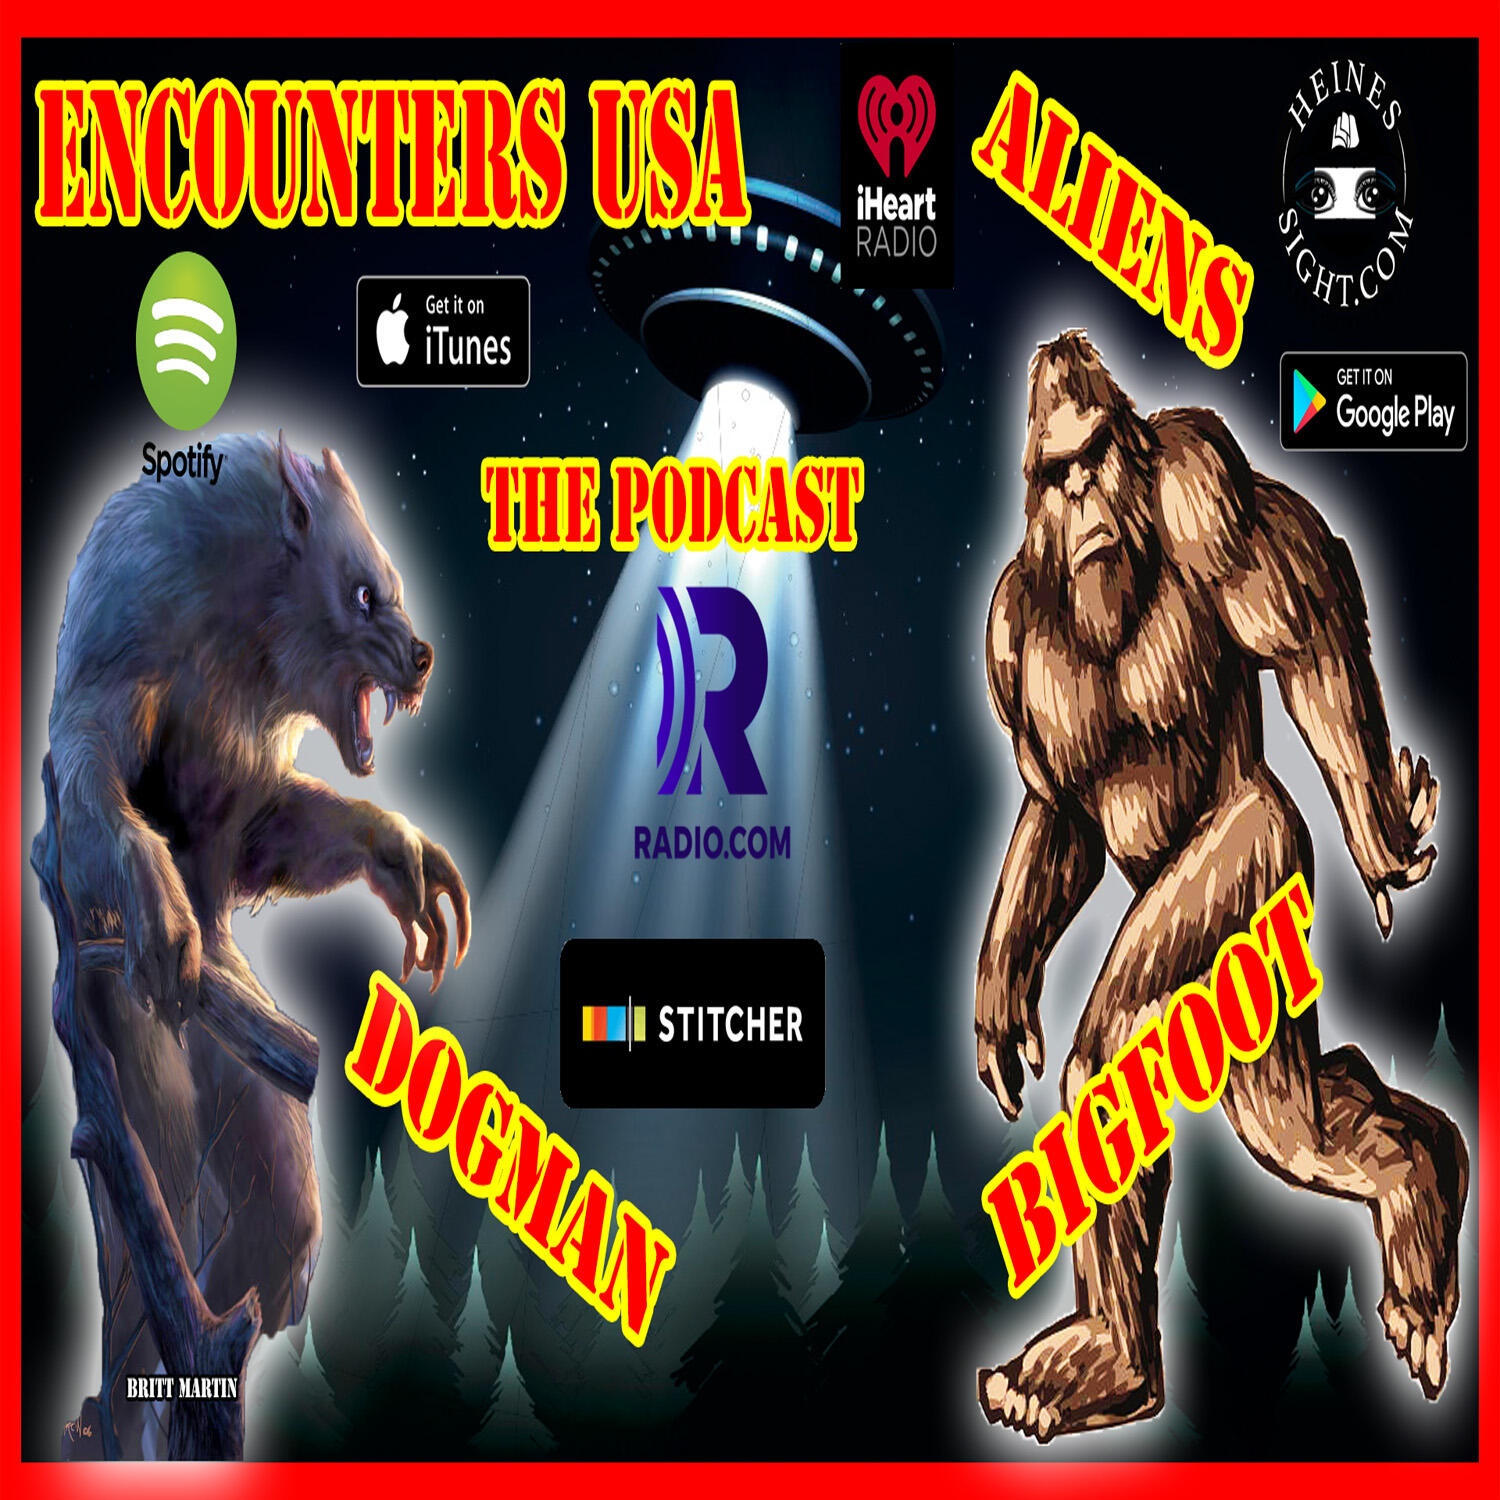 Encounters USA The Podcast